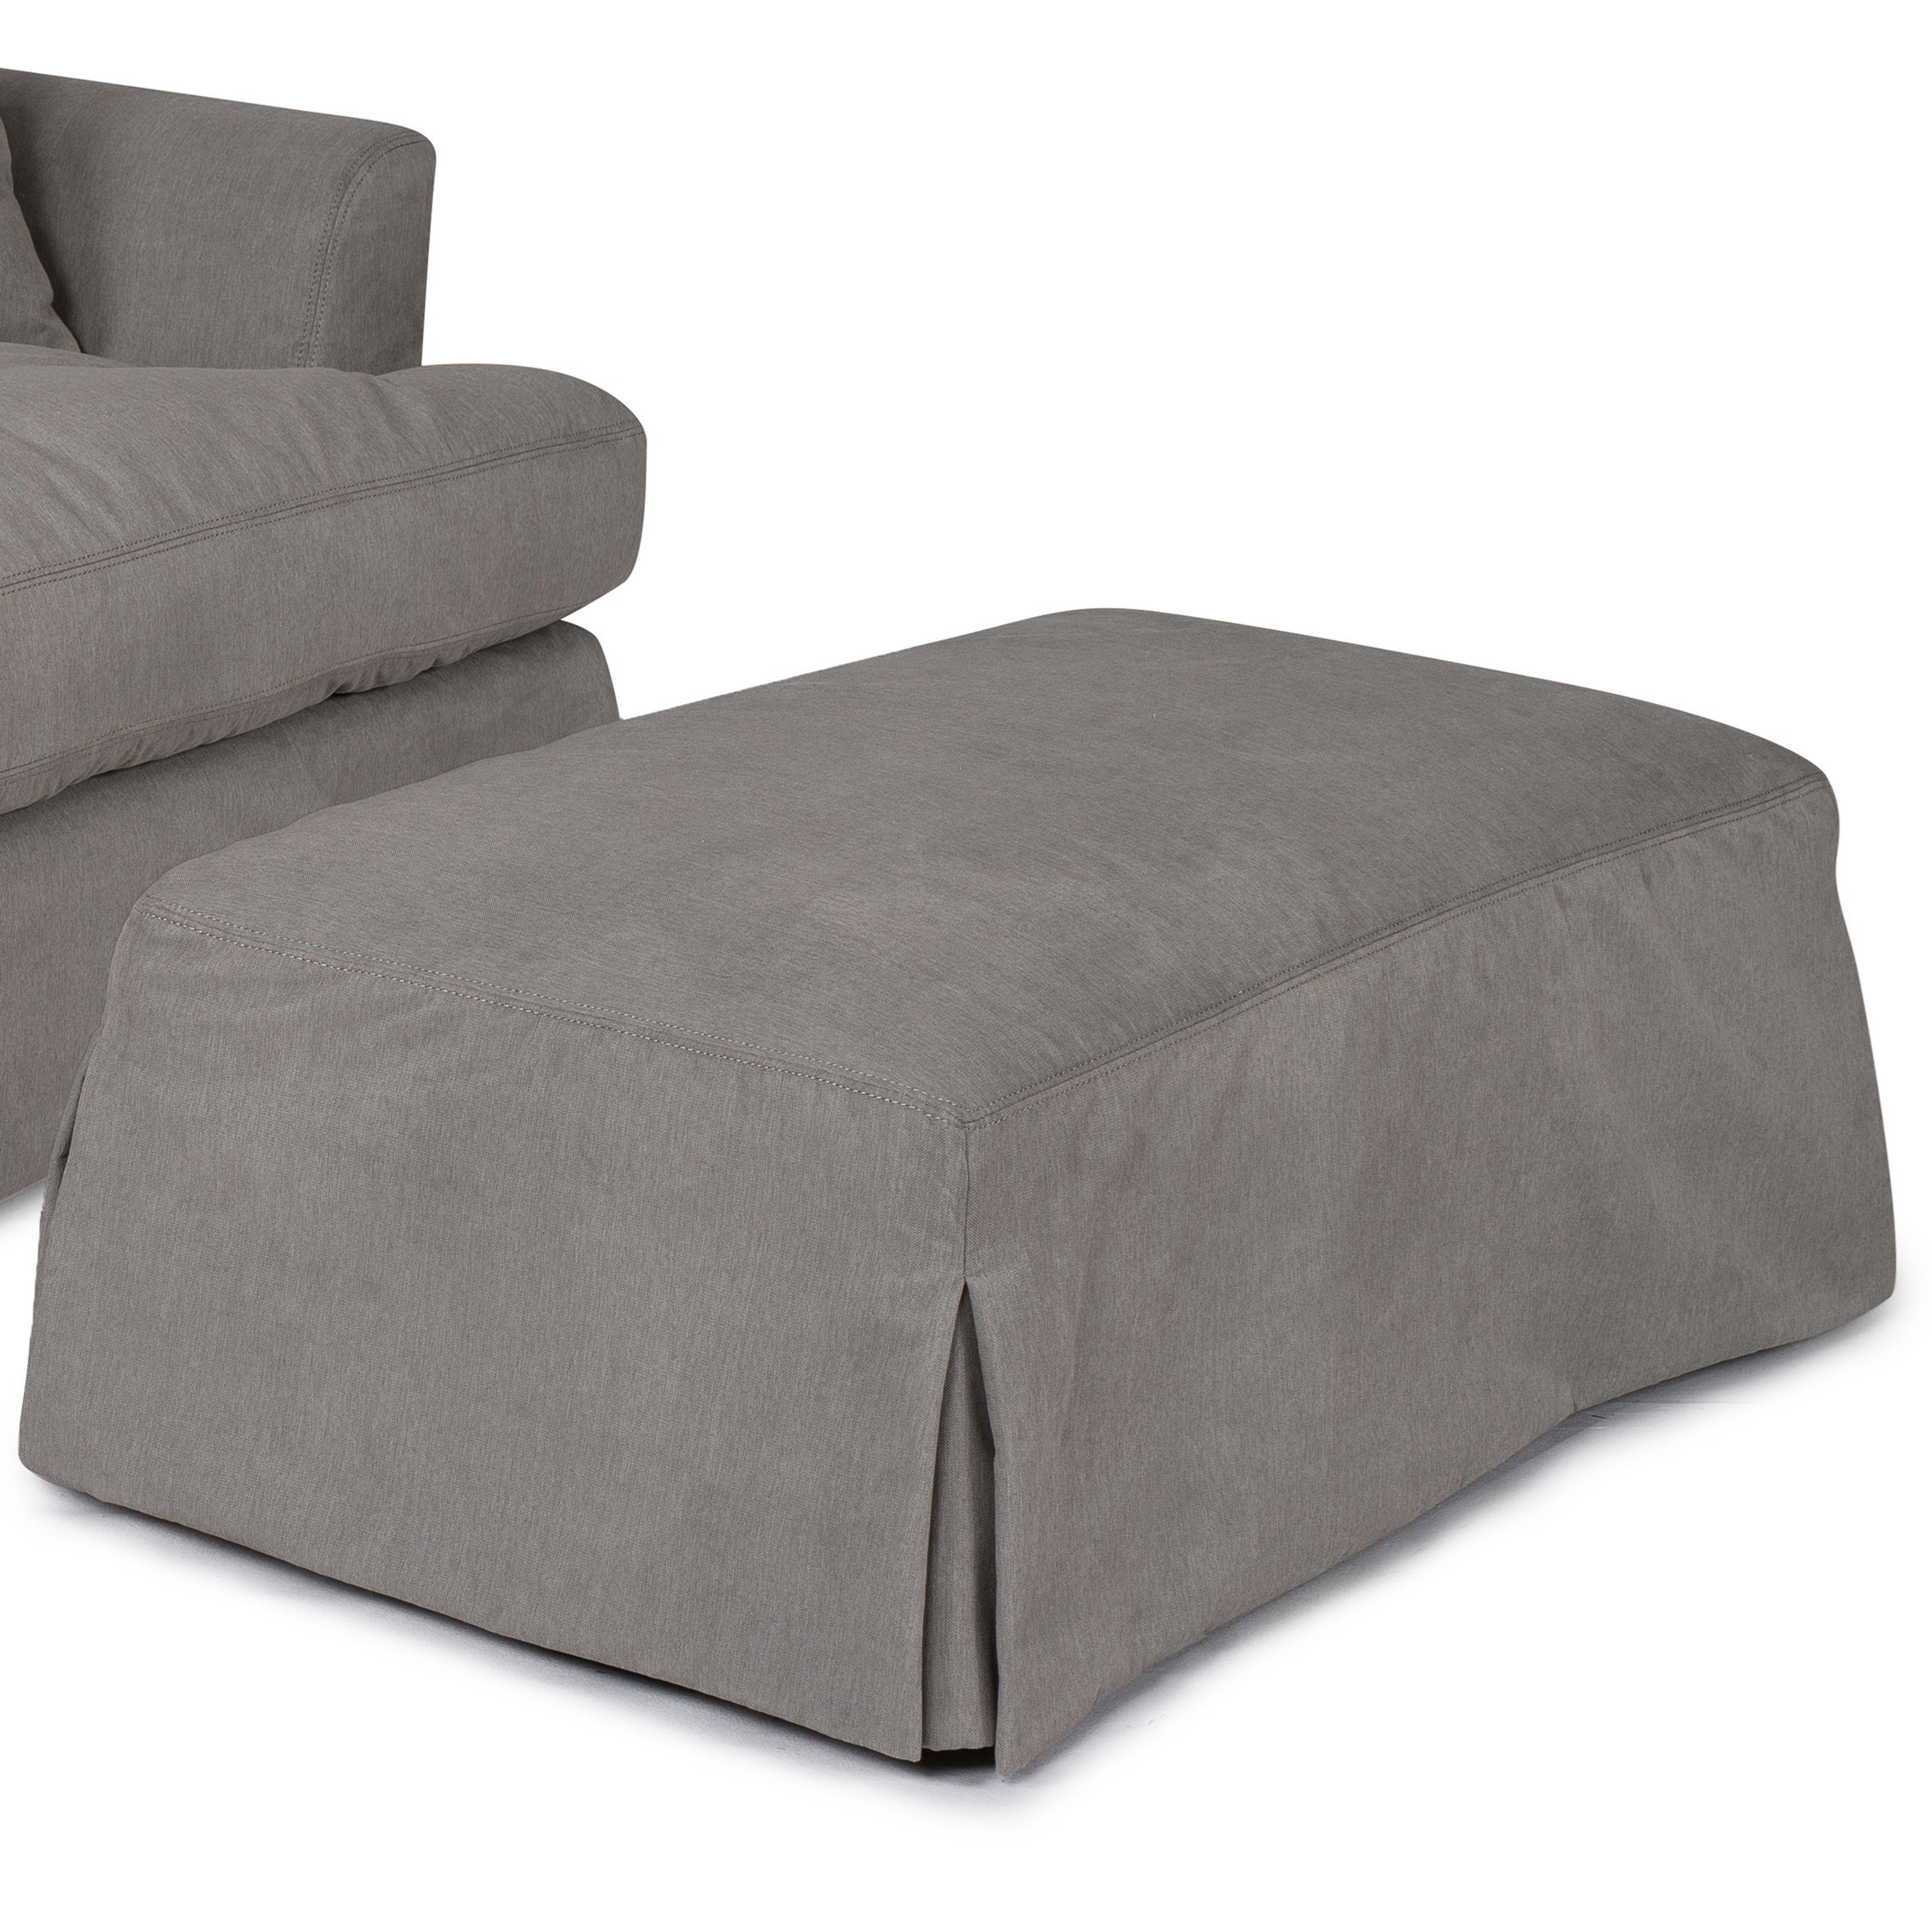 Synergy Home Furnishings 1300 Ottoman. Ottomans   Capital Region  Albany  Capital District  Schenectady